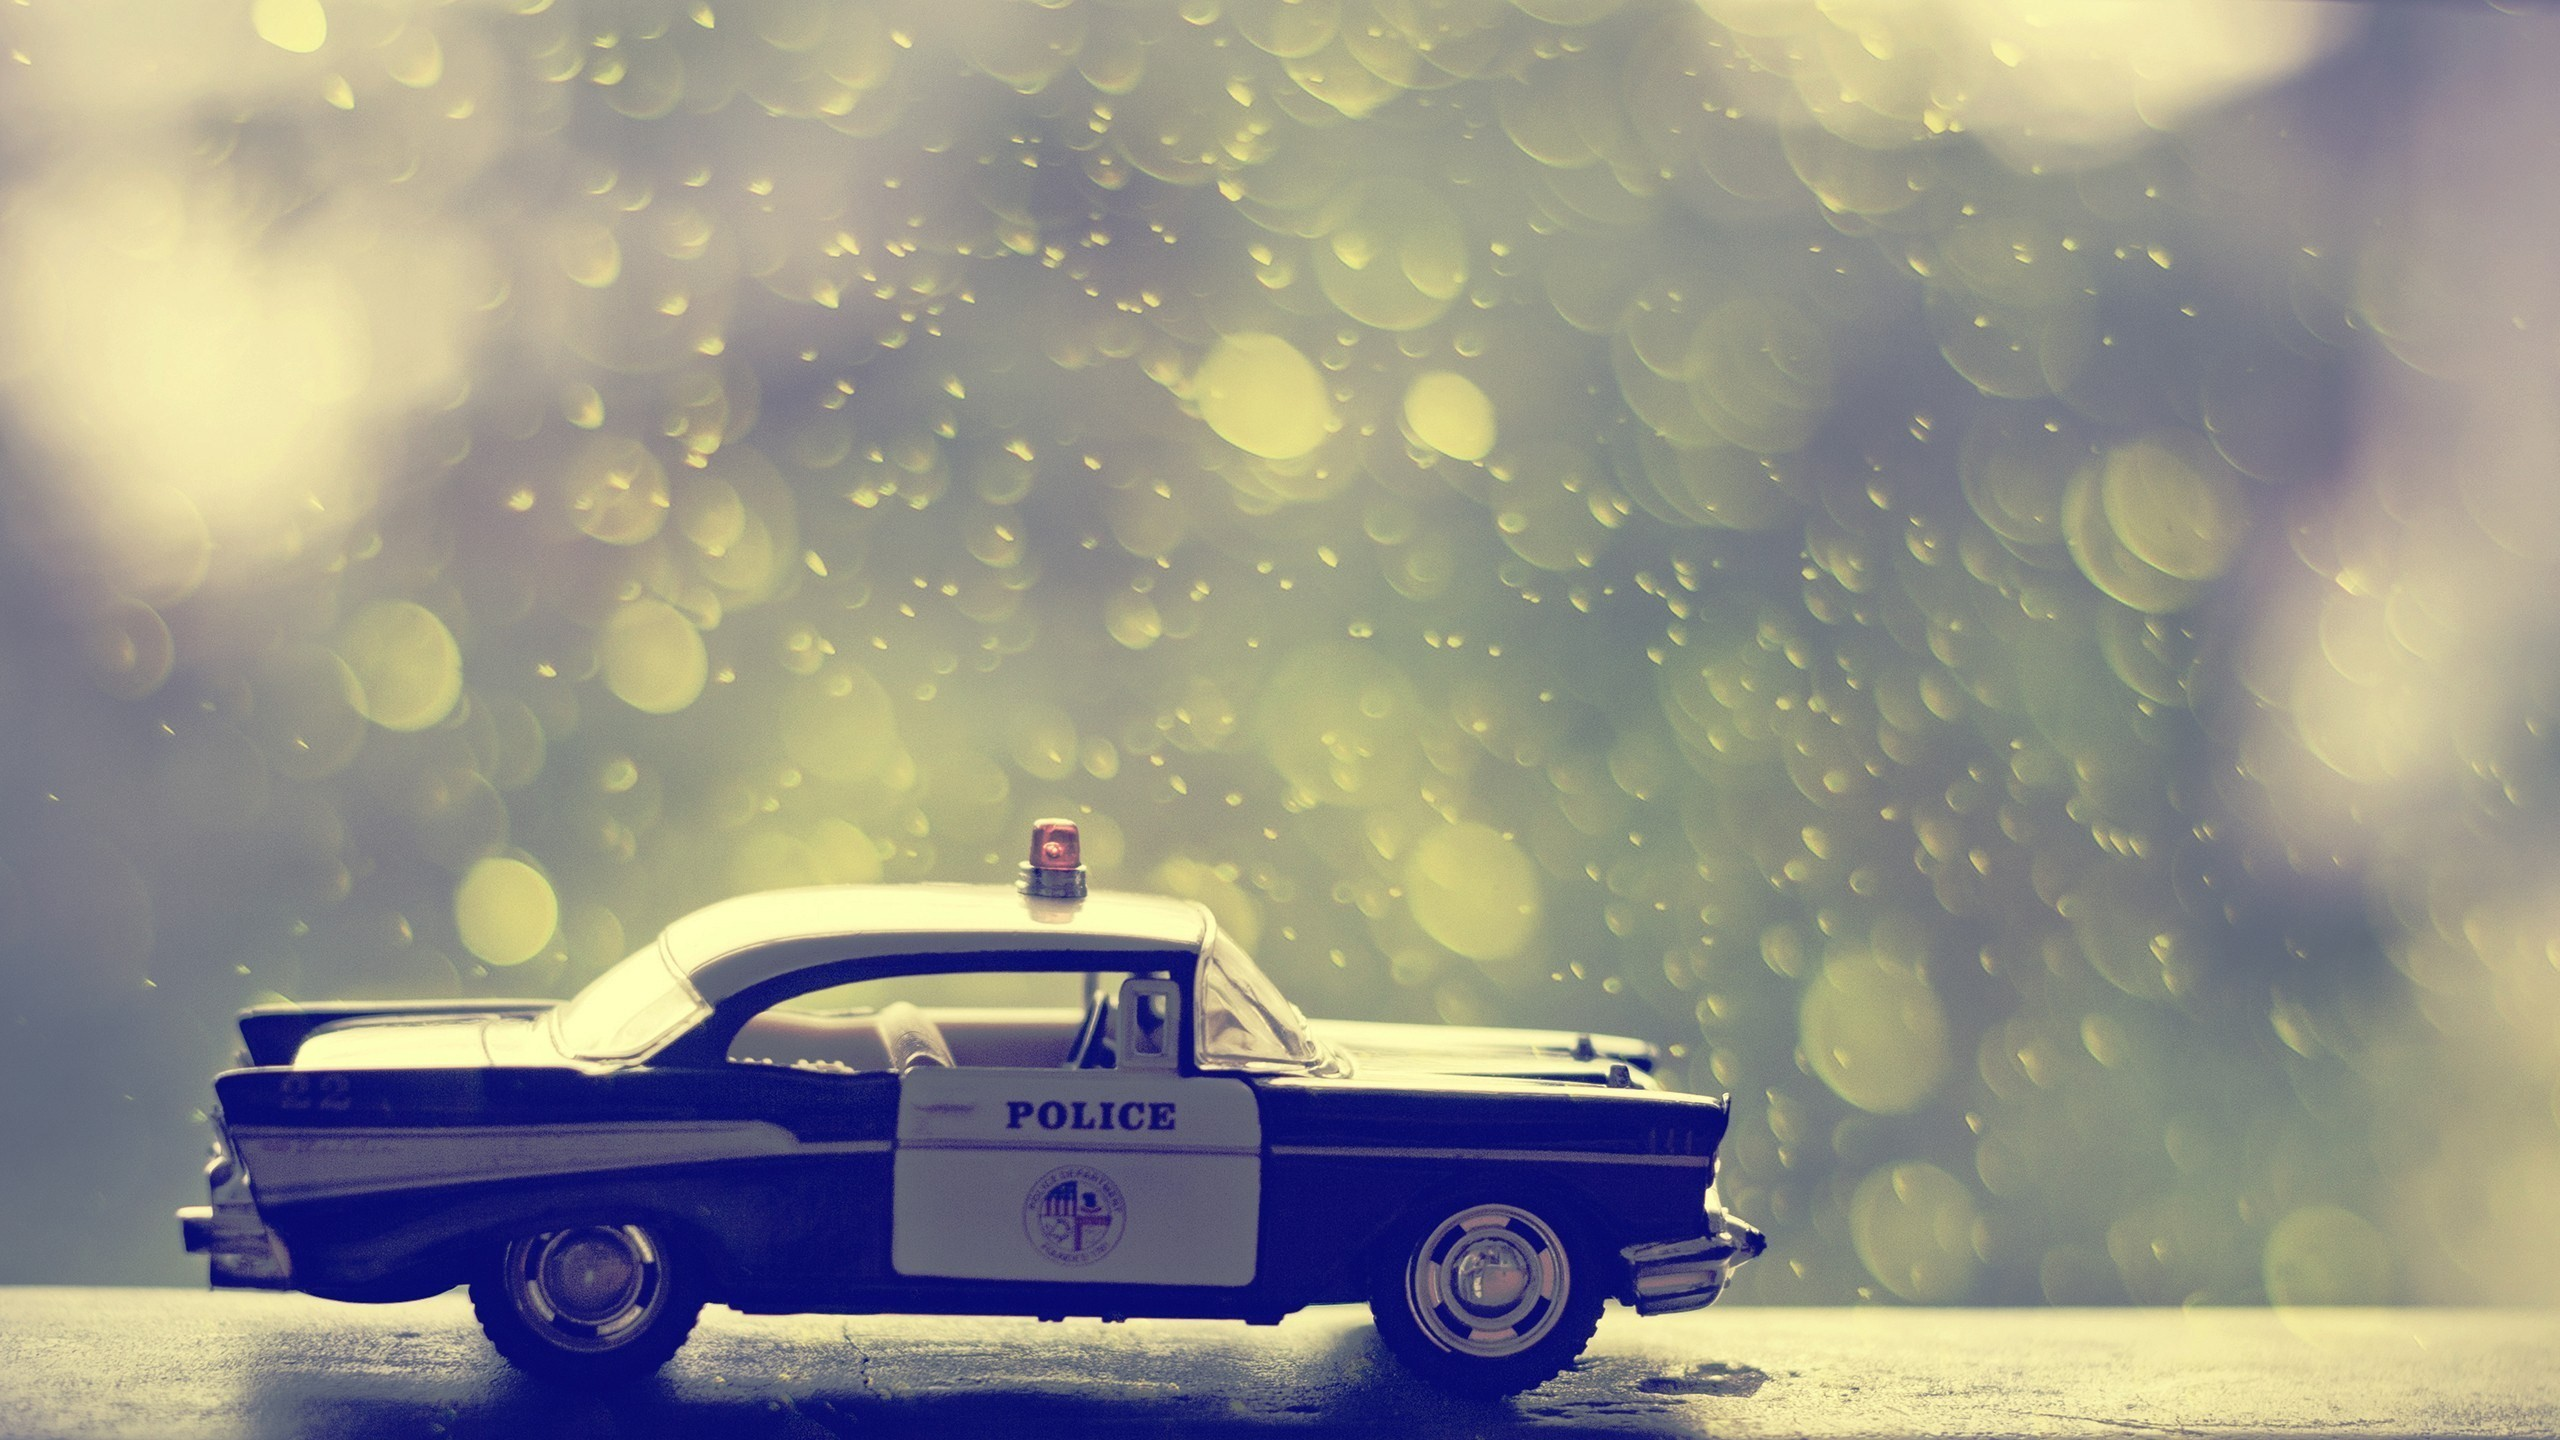 Toy Police Car | by photographyw on Photography Wallpapers